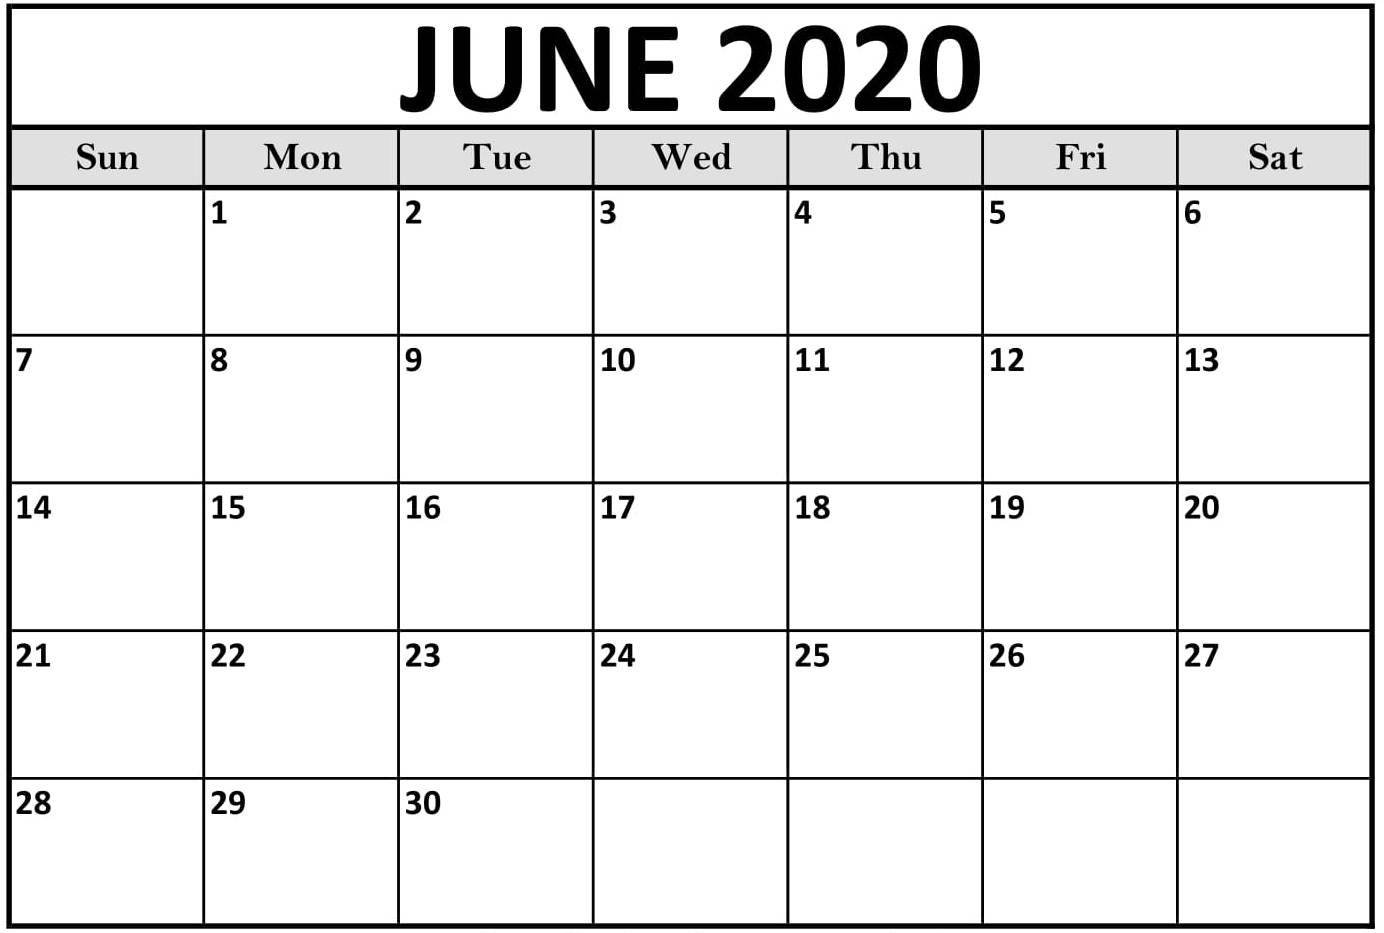 Monthly Calendar Template June 2020